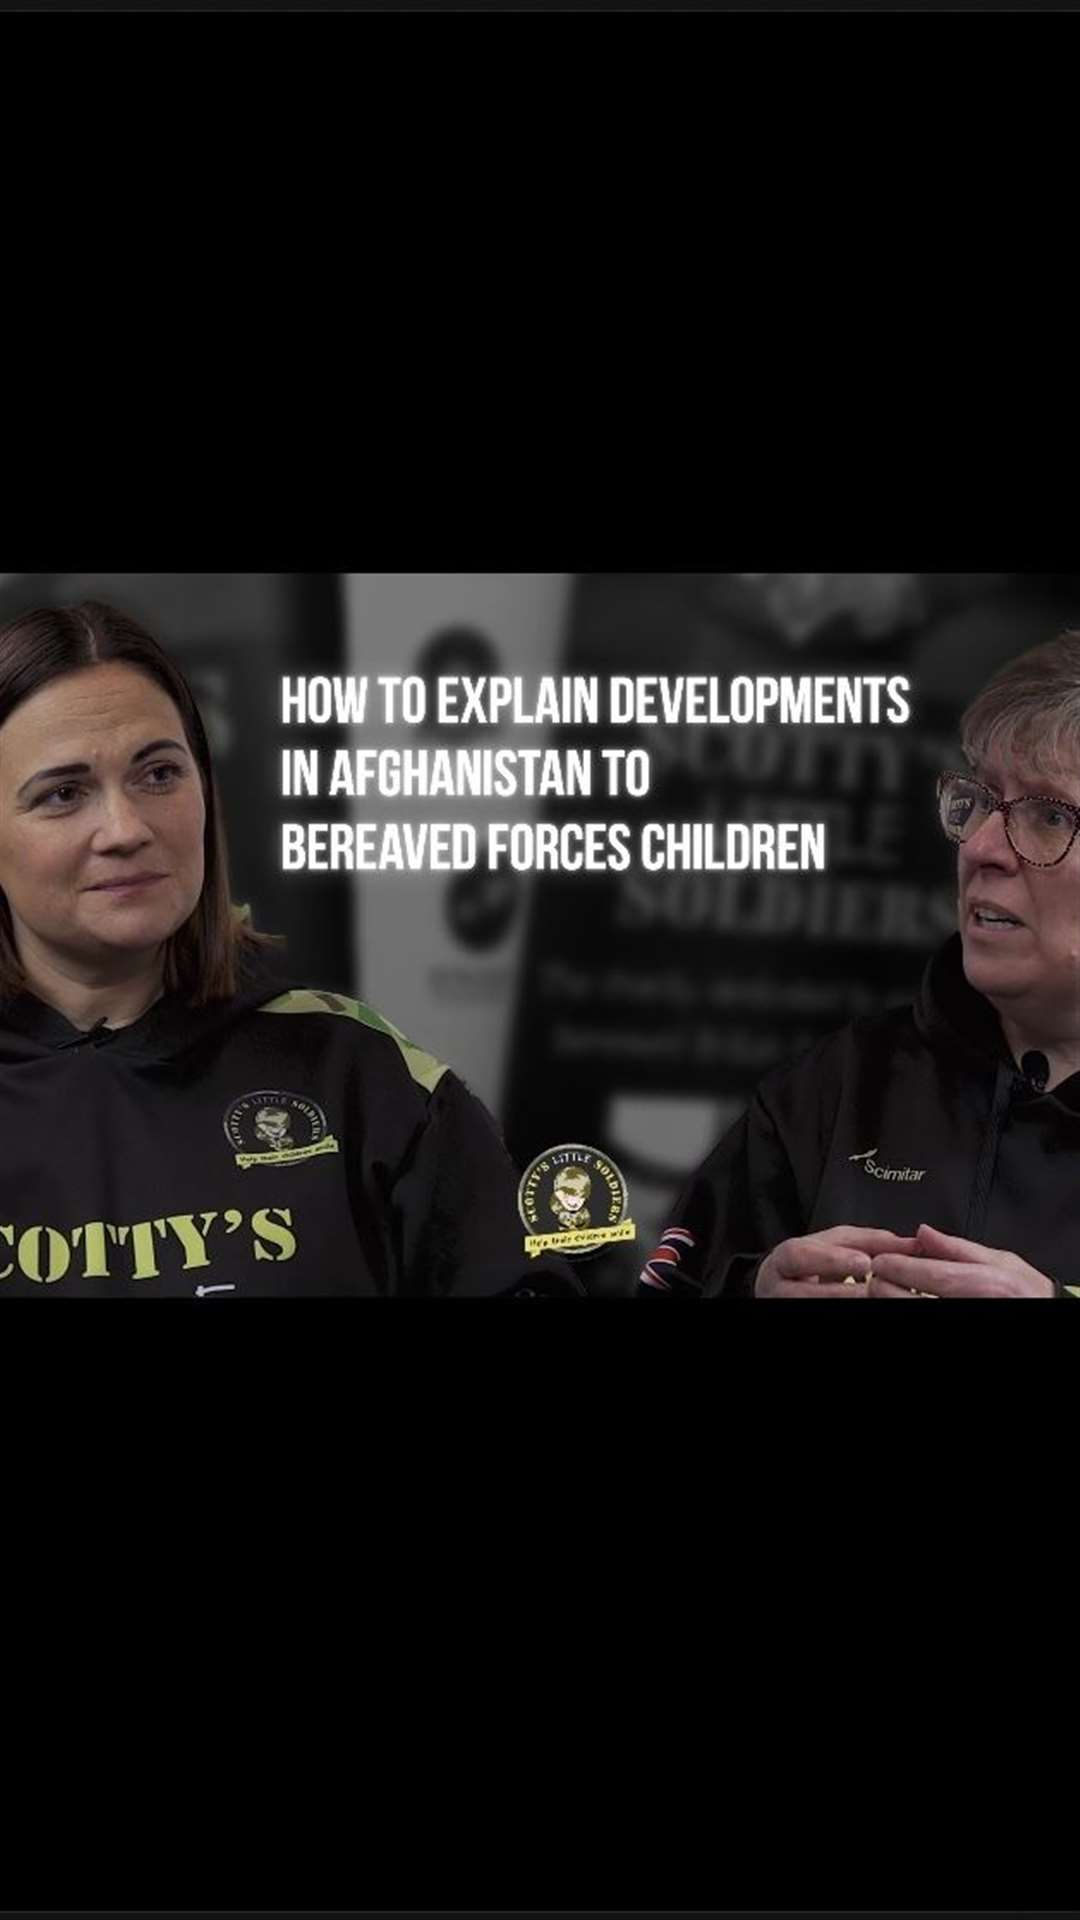 With developments in Afghanistan Nikki Scott, founder of Scotty's Little Soldiers reaches out to Lorna Vyse, childhood bereavement practitioner. (50758381)